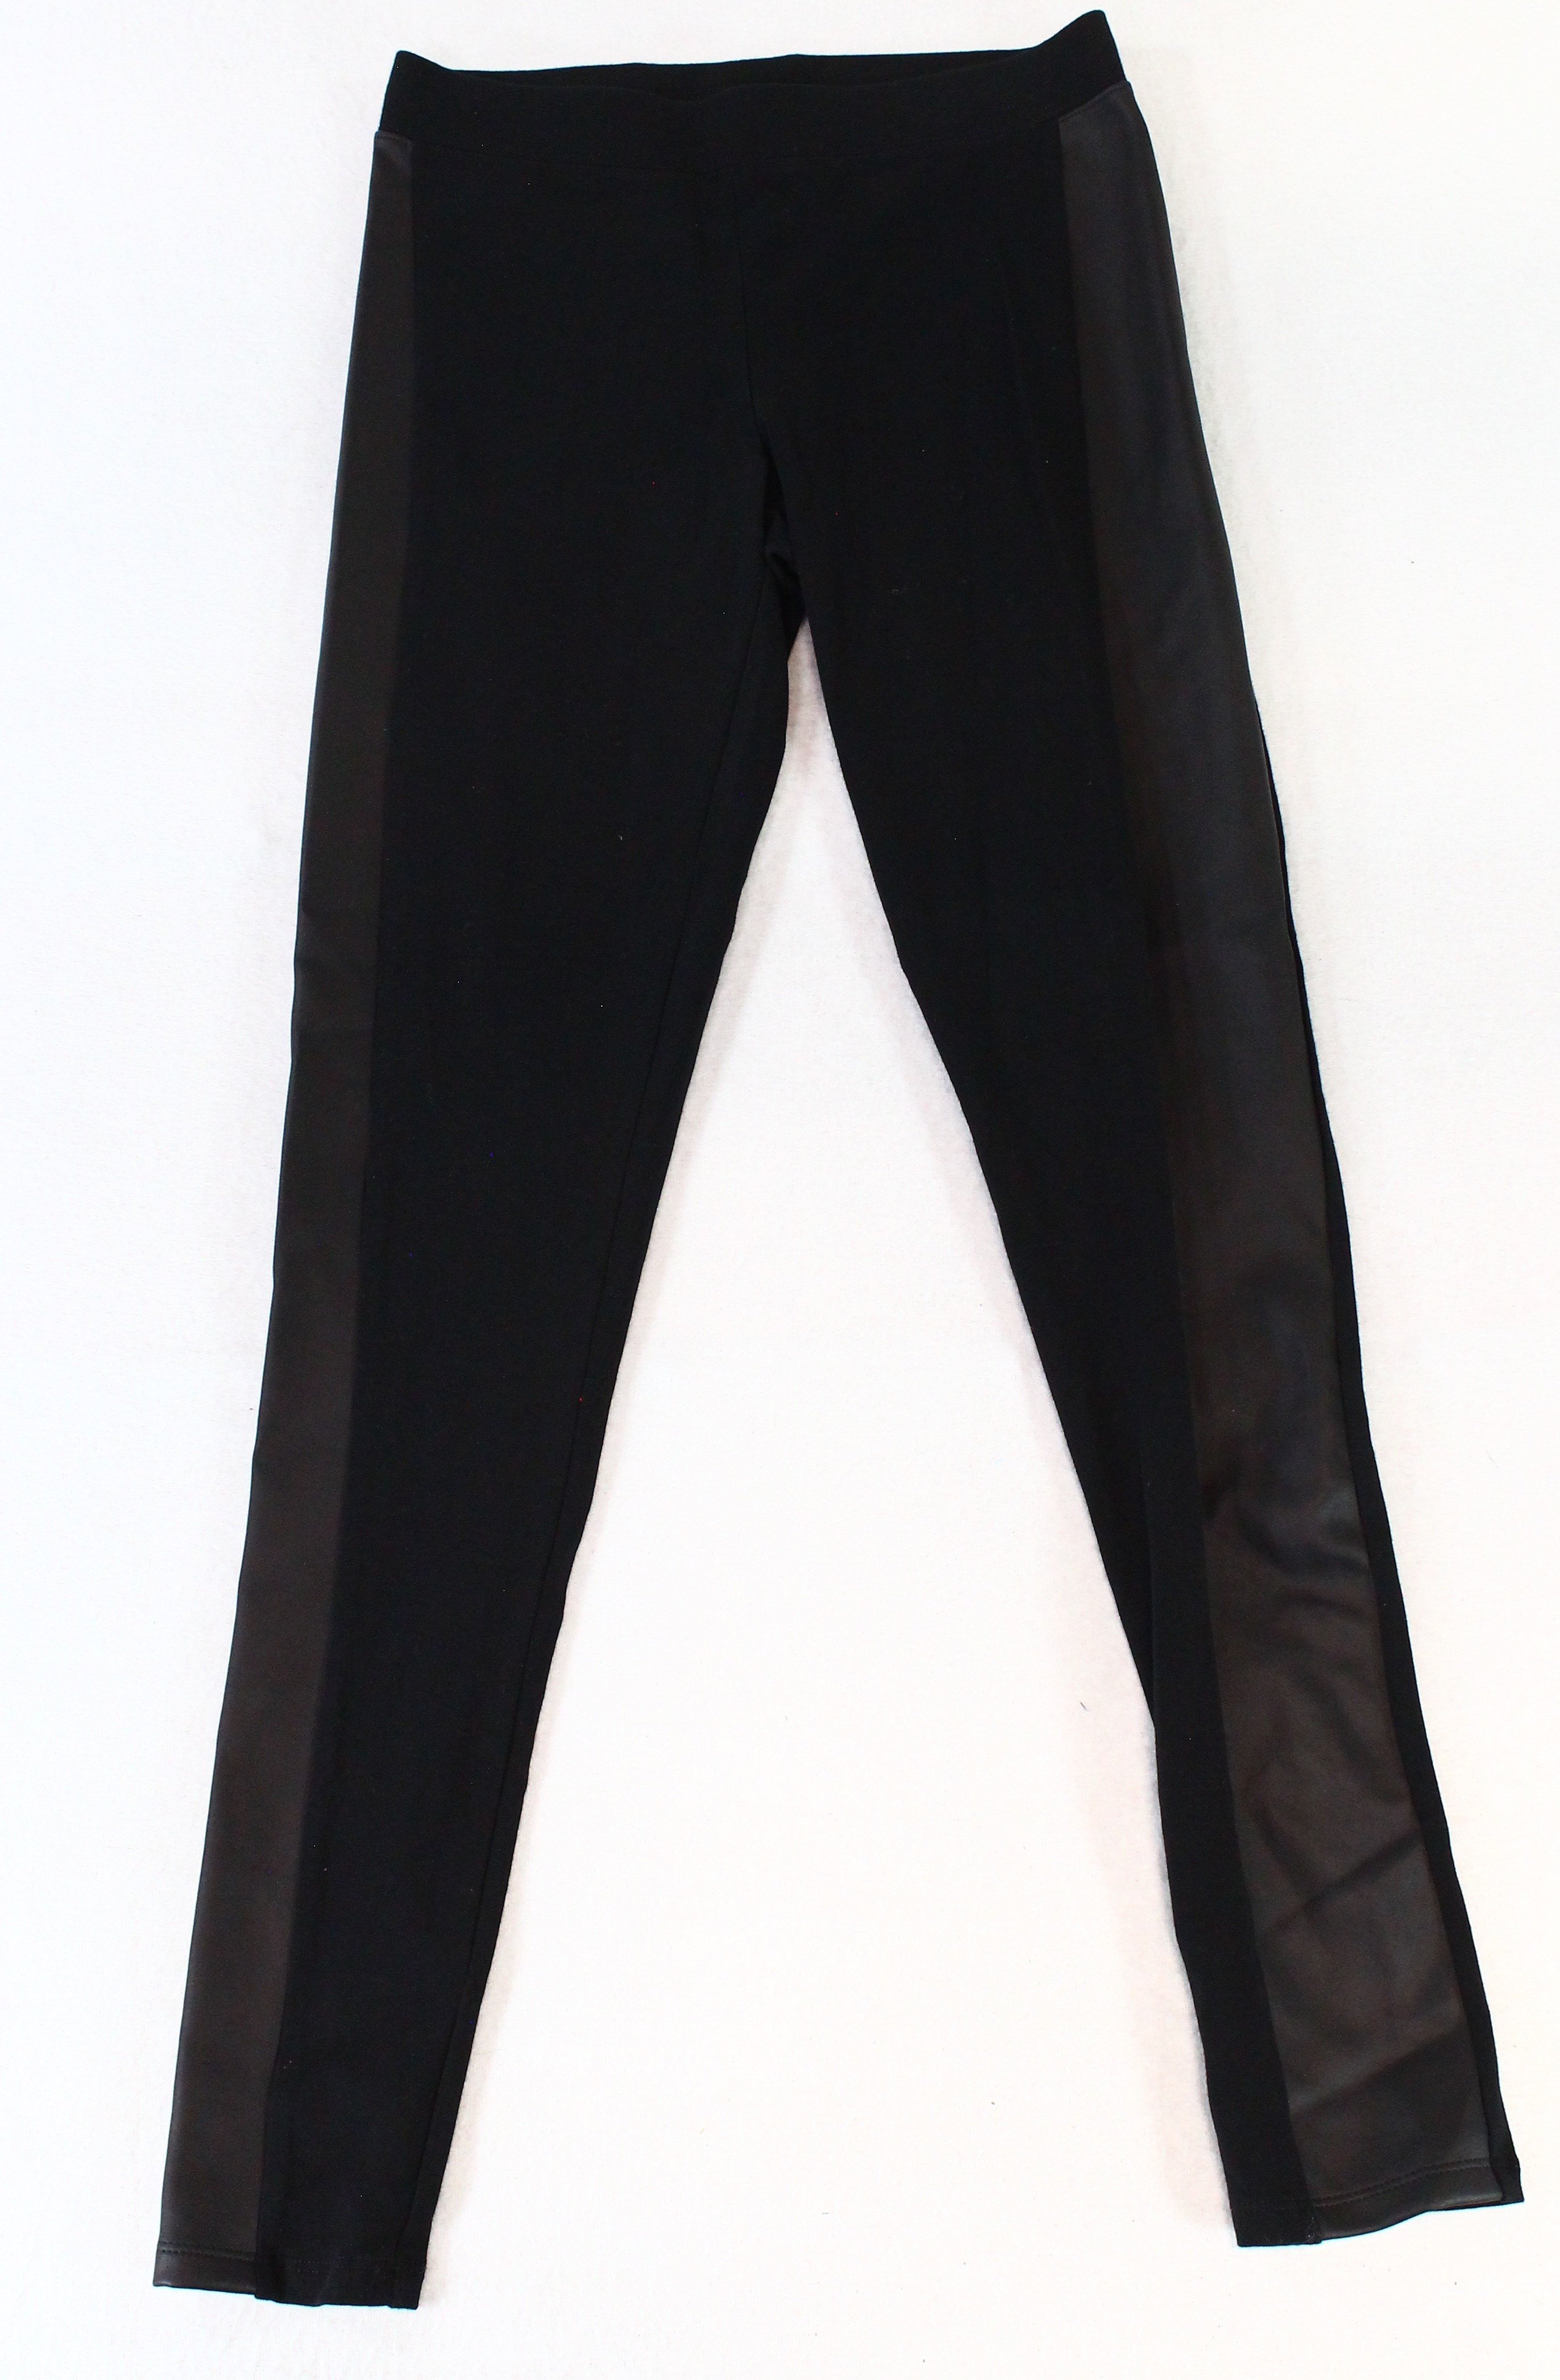 3b7b6e1d72f93 Details about Express NEW Black Womens Size XS Faux Leather Striped Stretch  Legging $40 023